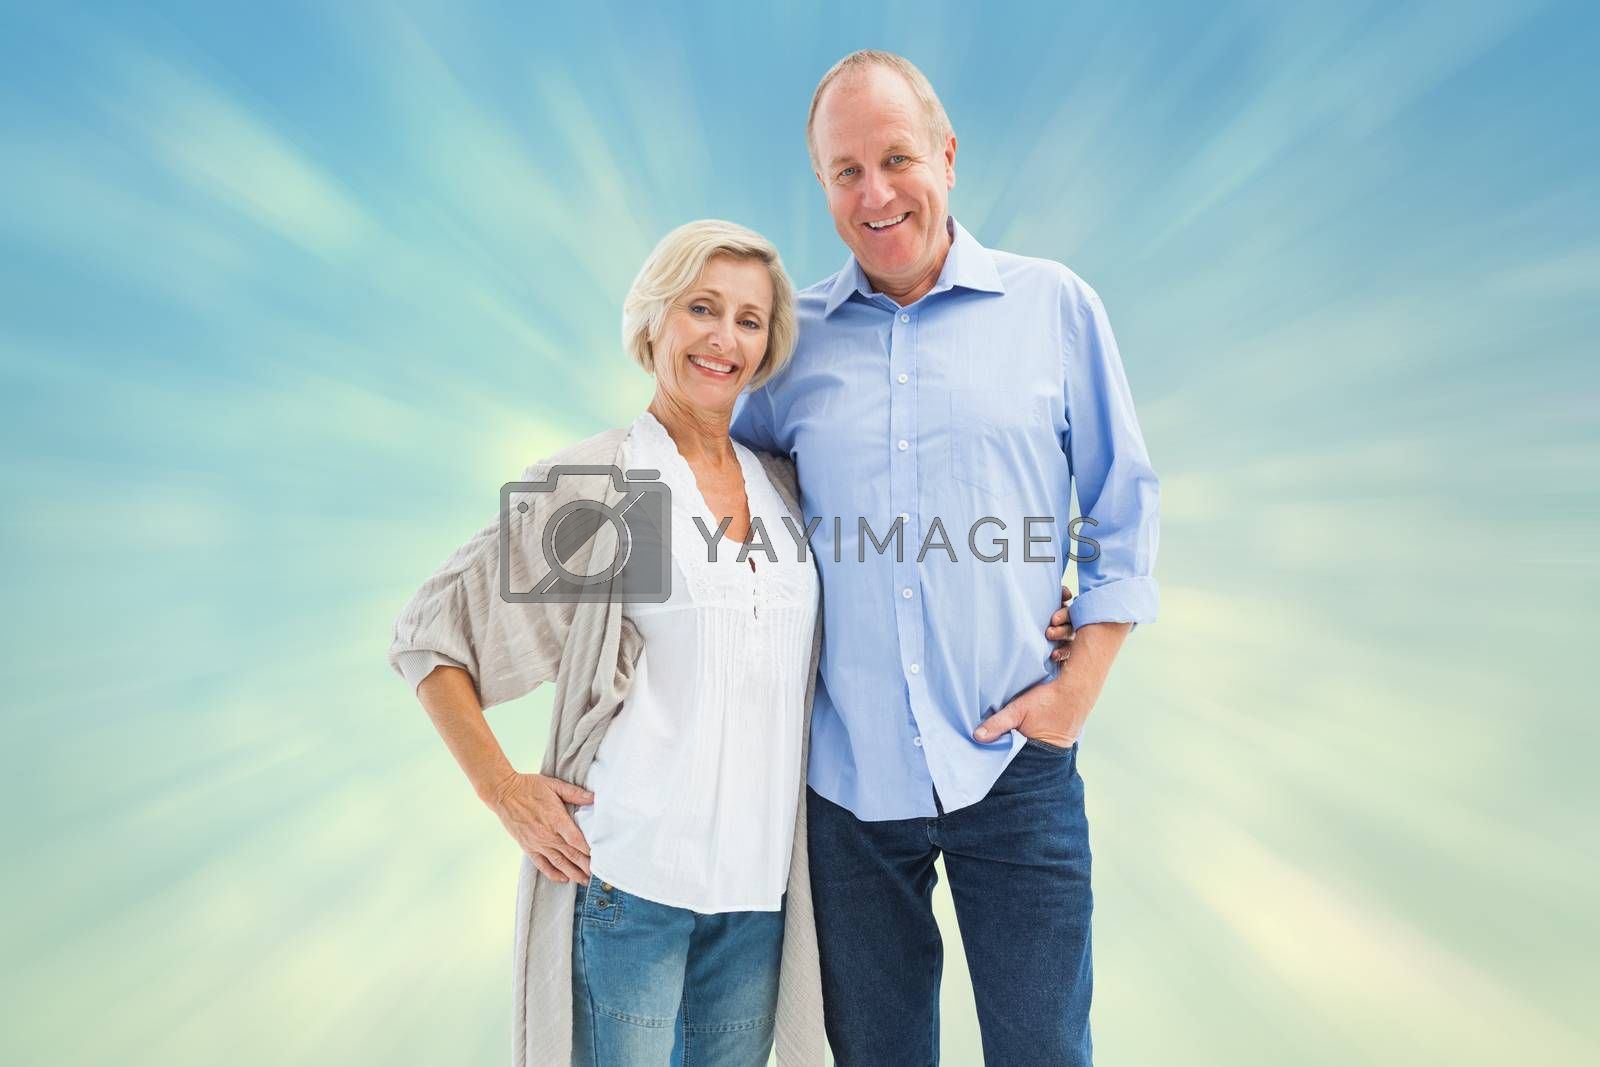 Happy mature couple hugging and smiling against blue abstract light spot design